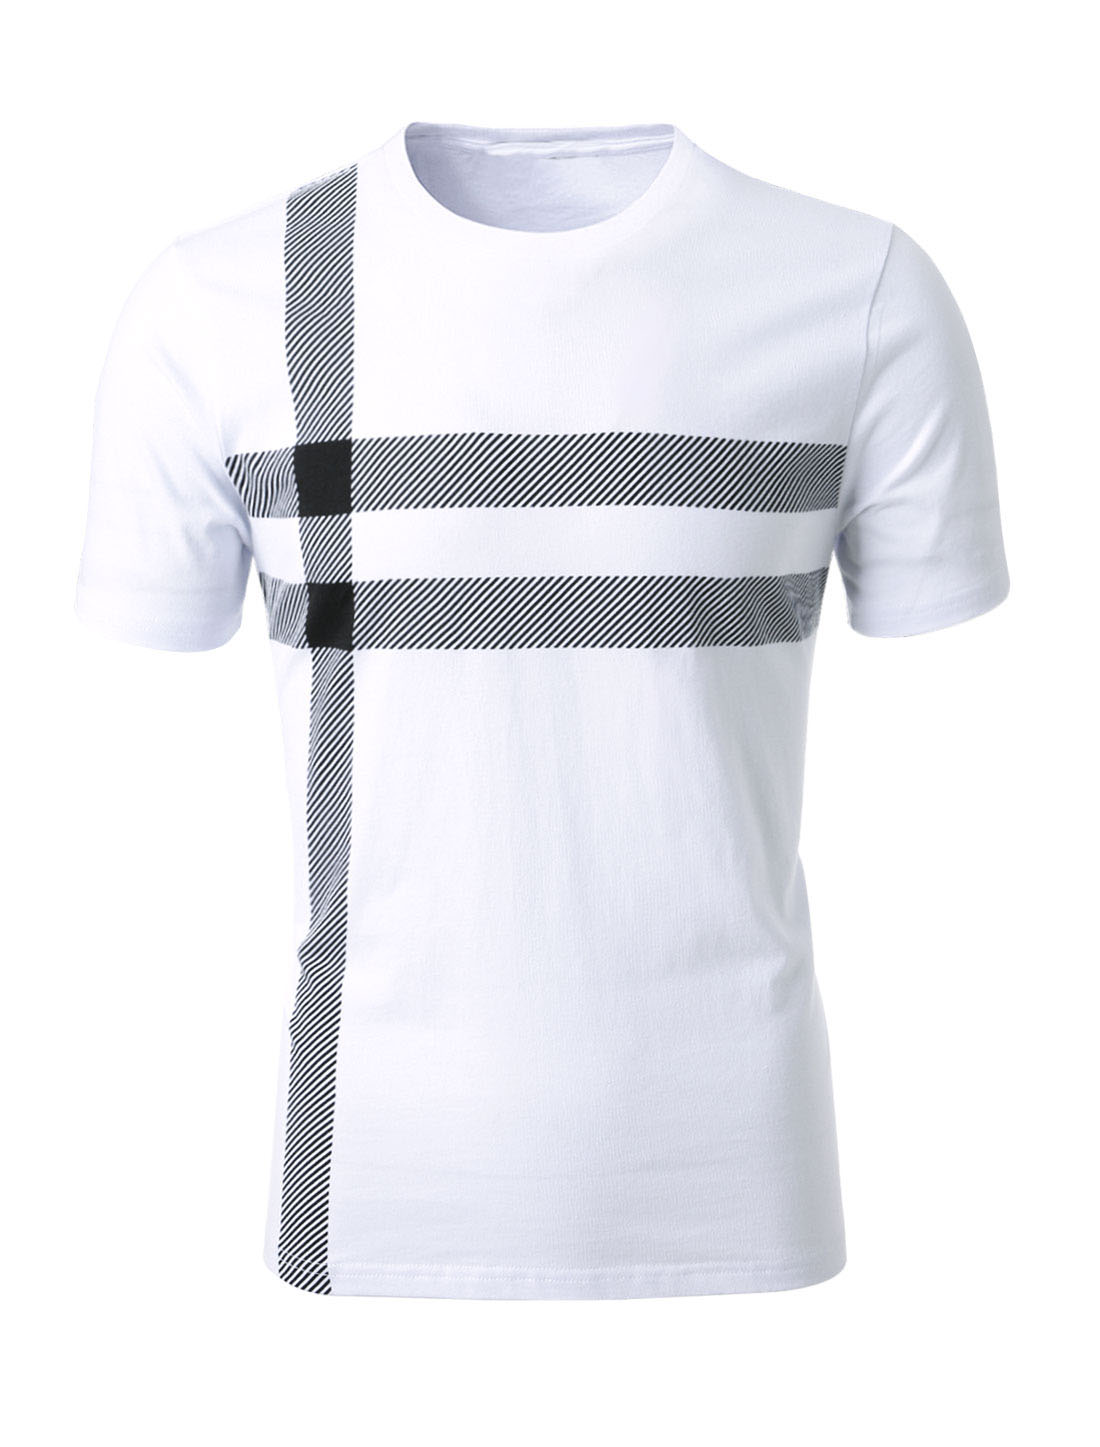 Men Striped Short Sleeves Crew Neck Tee Shirt White S